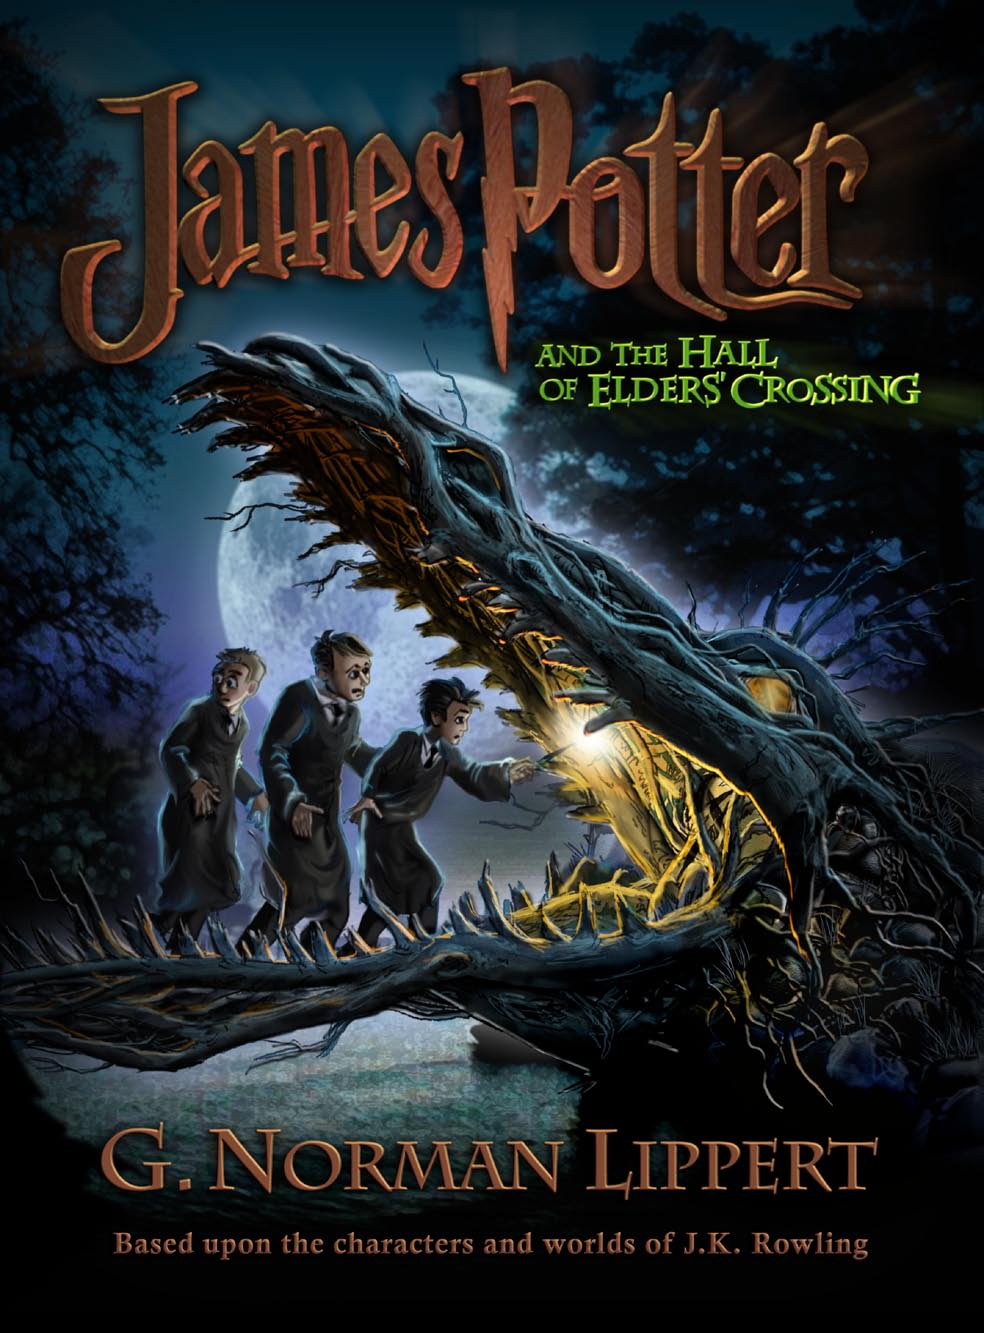 Harry Potter Book Wiki : James potter and the hall of elders crossing